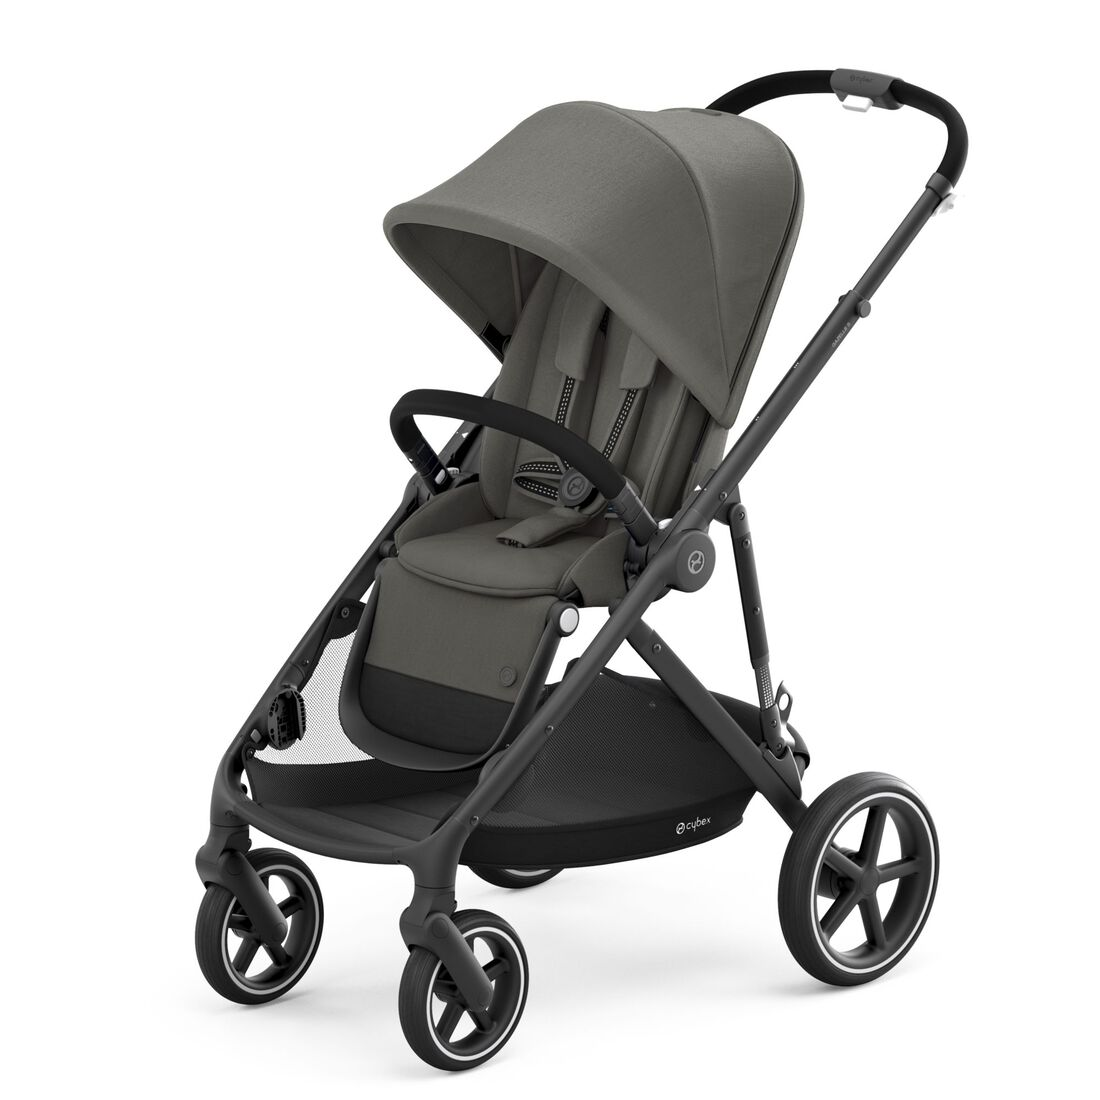 CYBEX Gazelle S - Soho Grey (Schwarzer Rahmen) in Soho Grey (Black Frame) large Bild 2